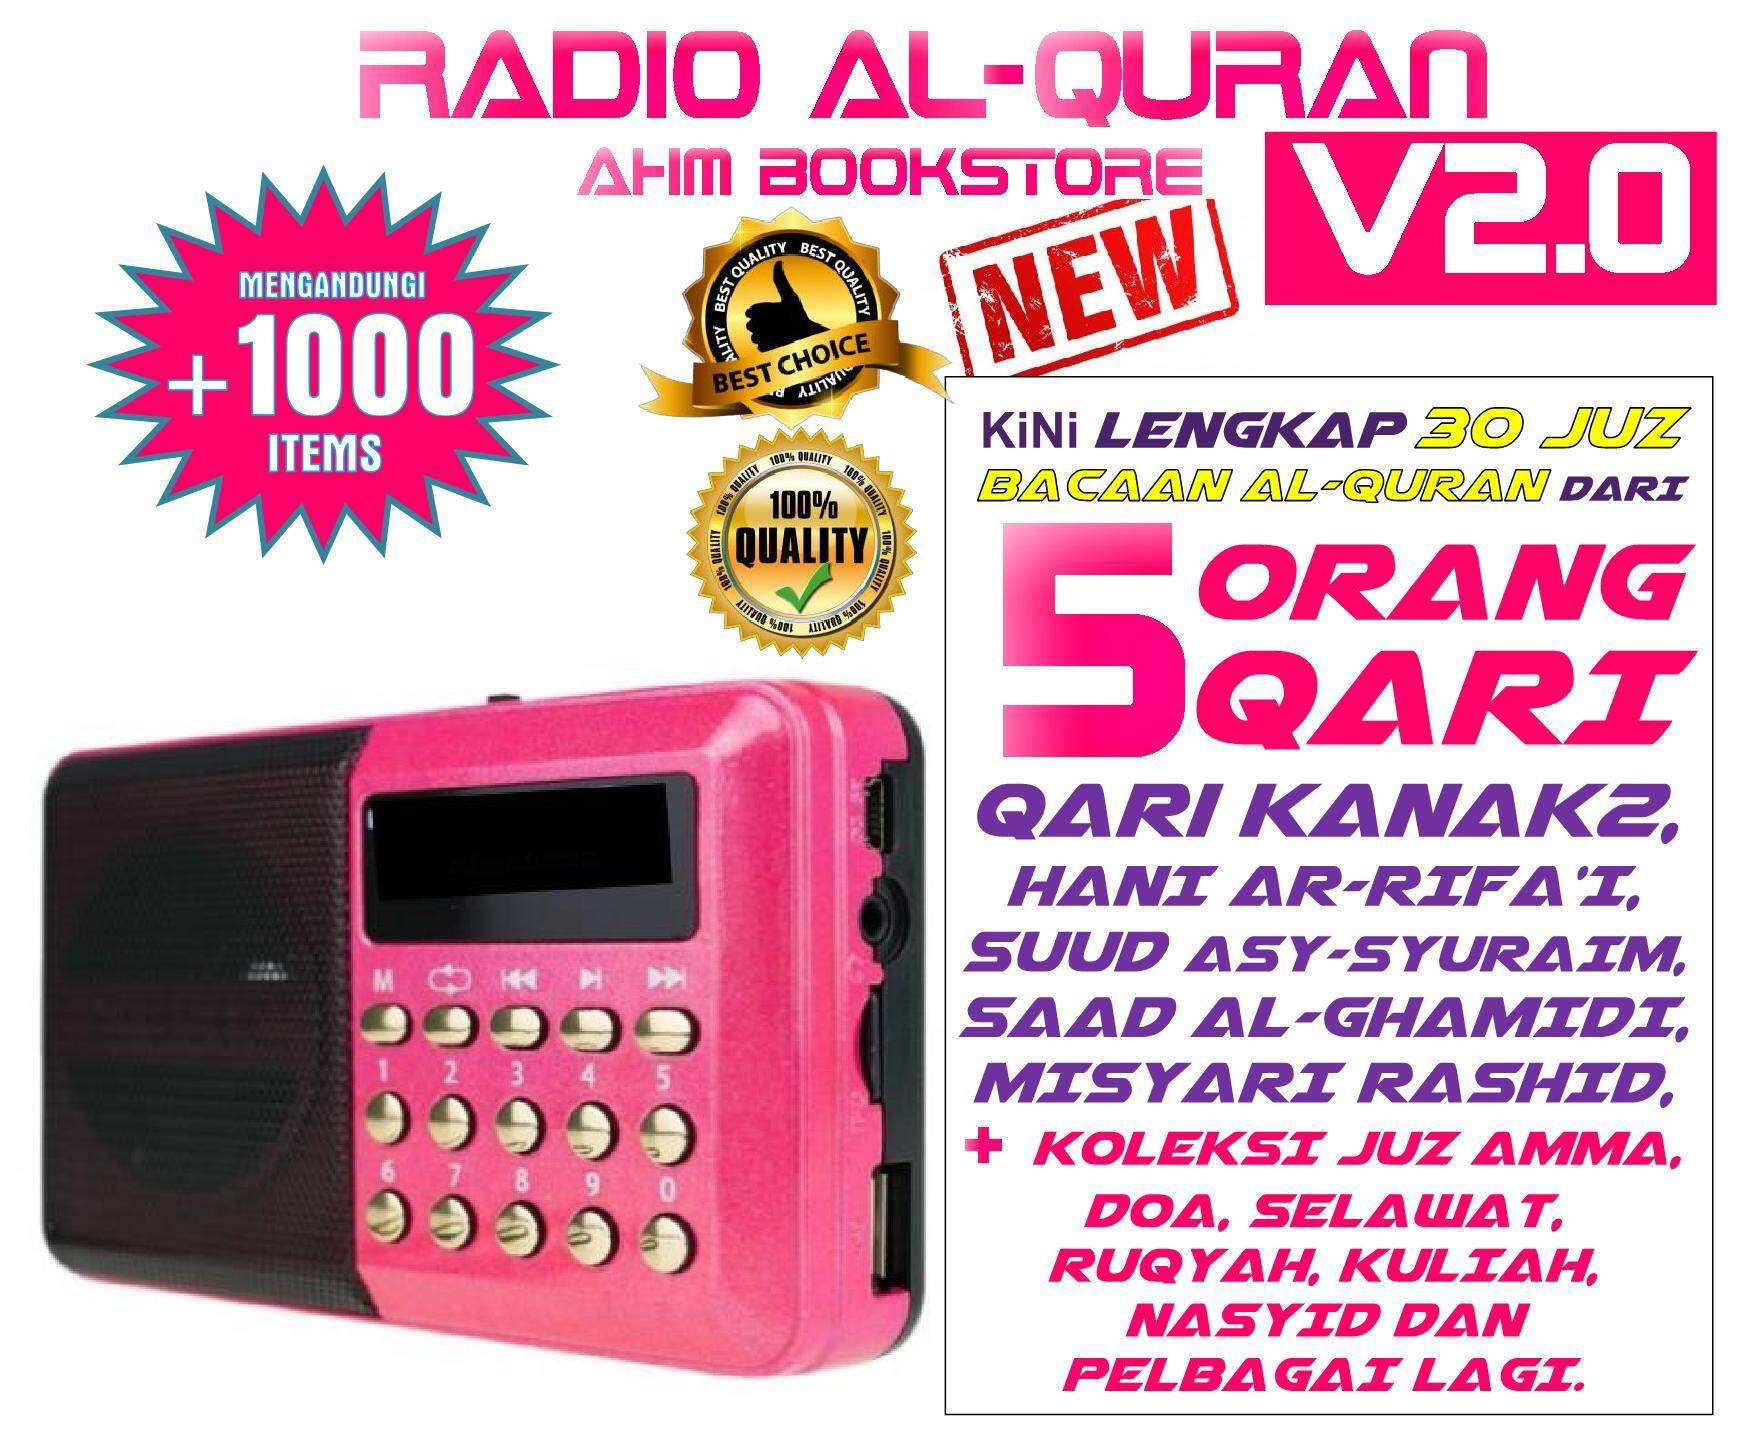 Radio Al-Quran Ahm Bookstore V2.0 Complete 30 Juz With 5 Qari Option (pink) By Ahm Bookstore.